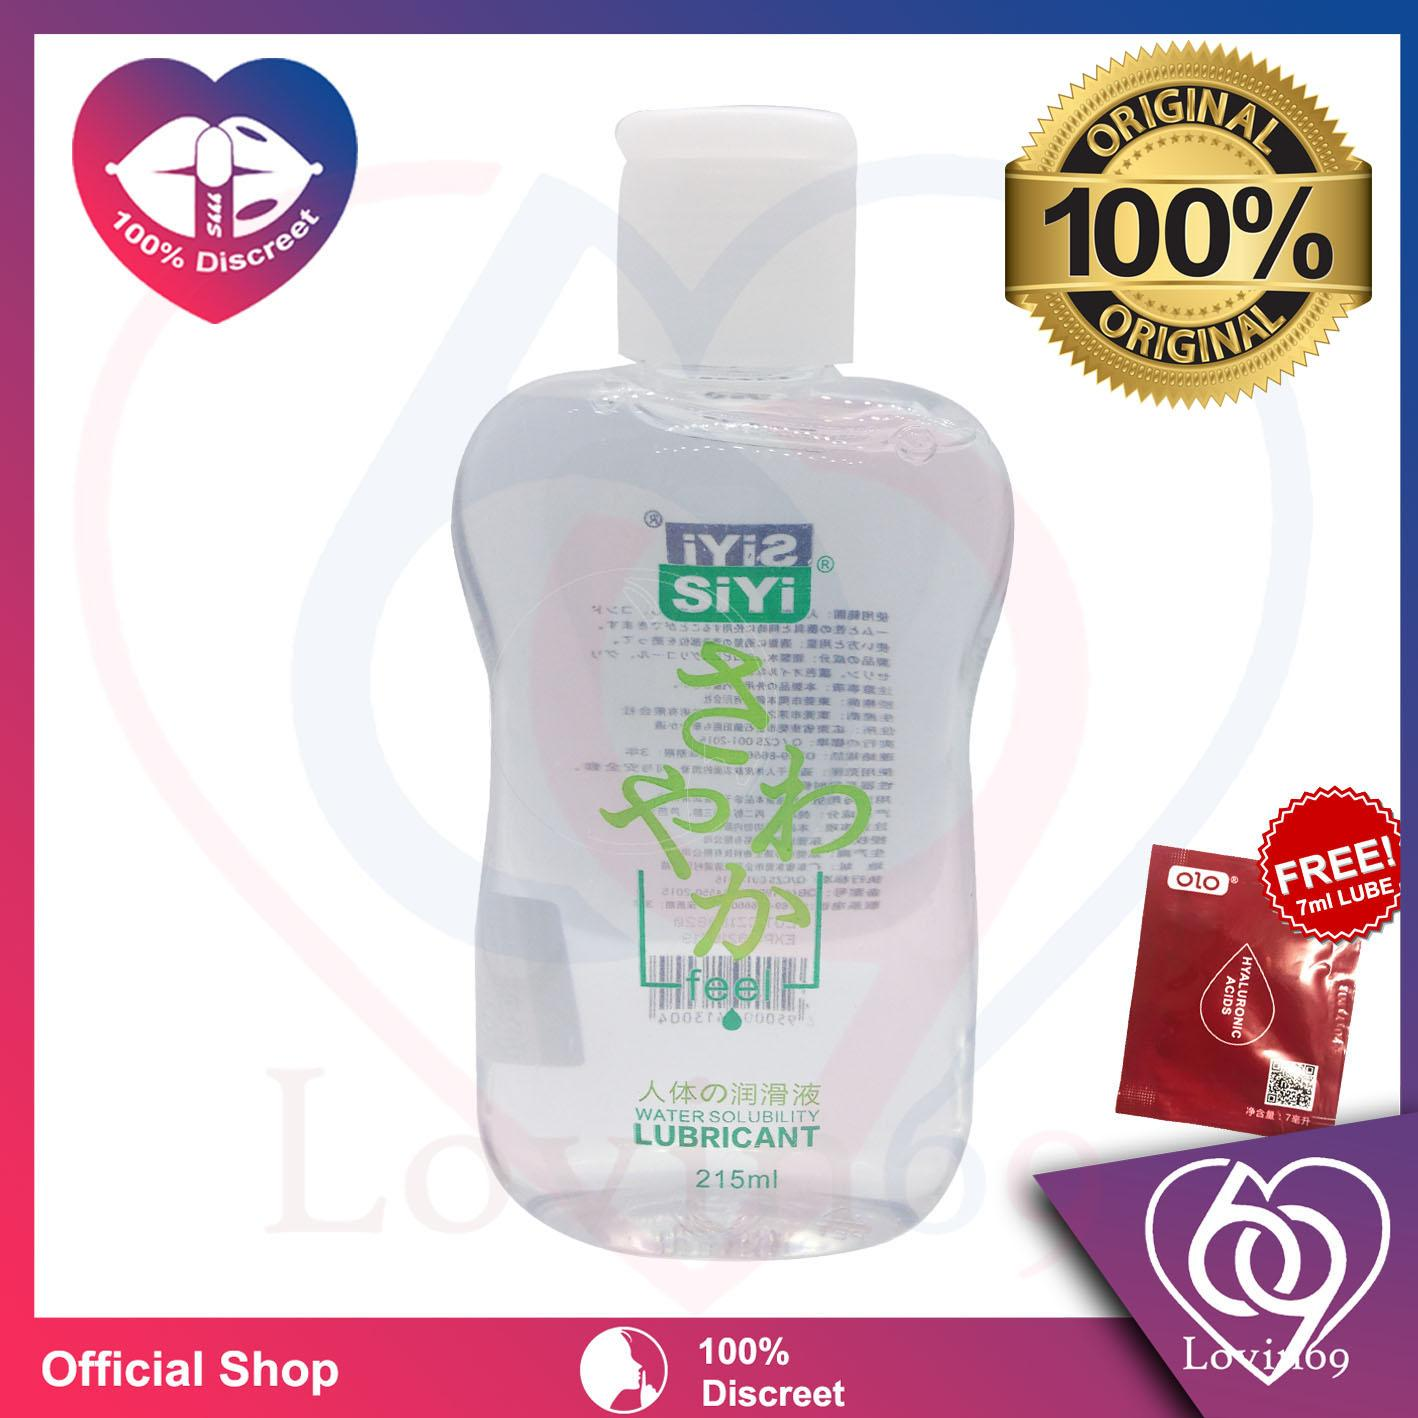 Lovin69 Siyi Japanese Water Base Lubricant For Sex Al0004 By Lovin69.